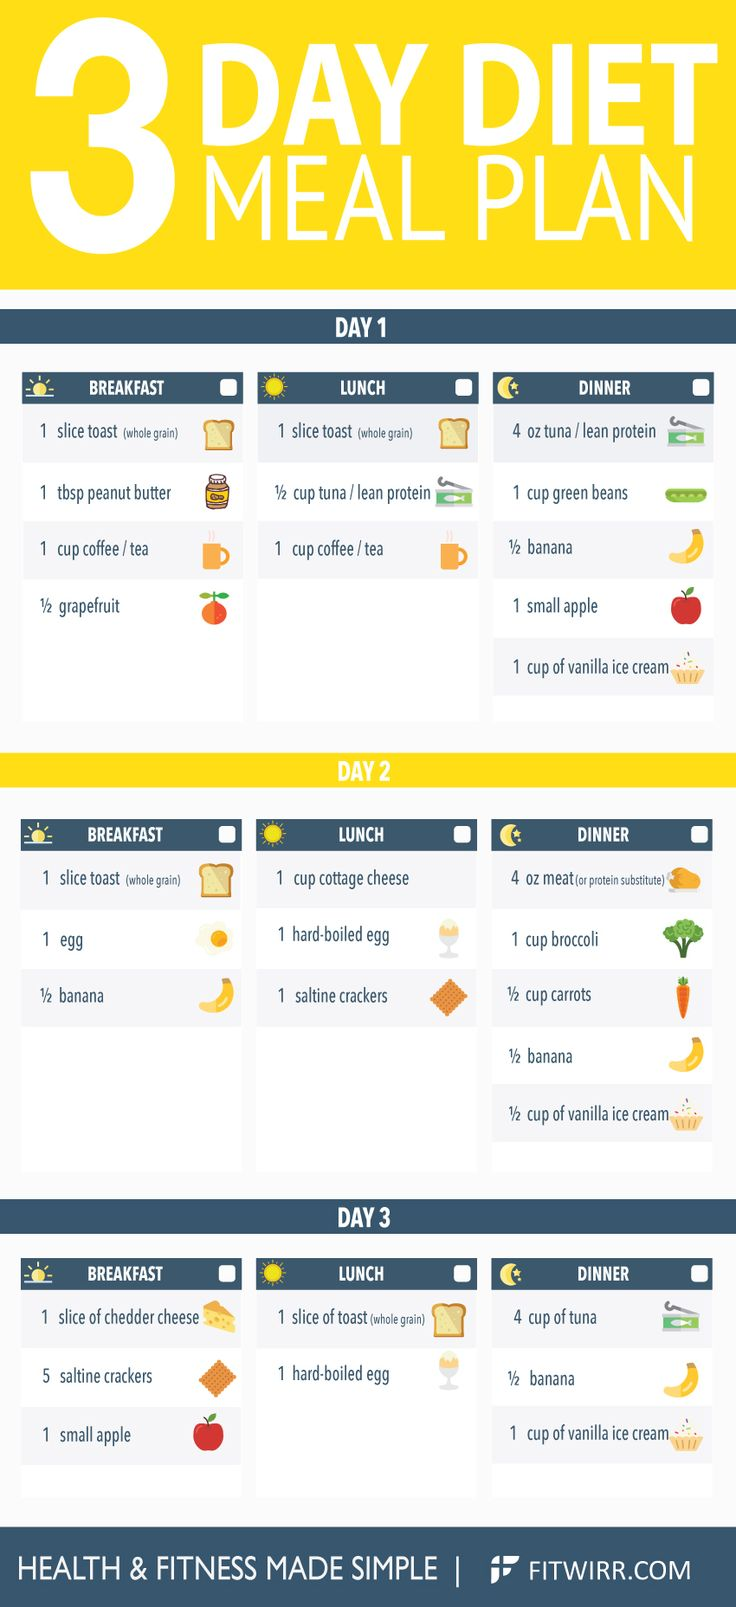 3 day diet plan. #3daydietplan